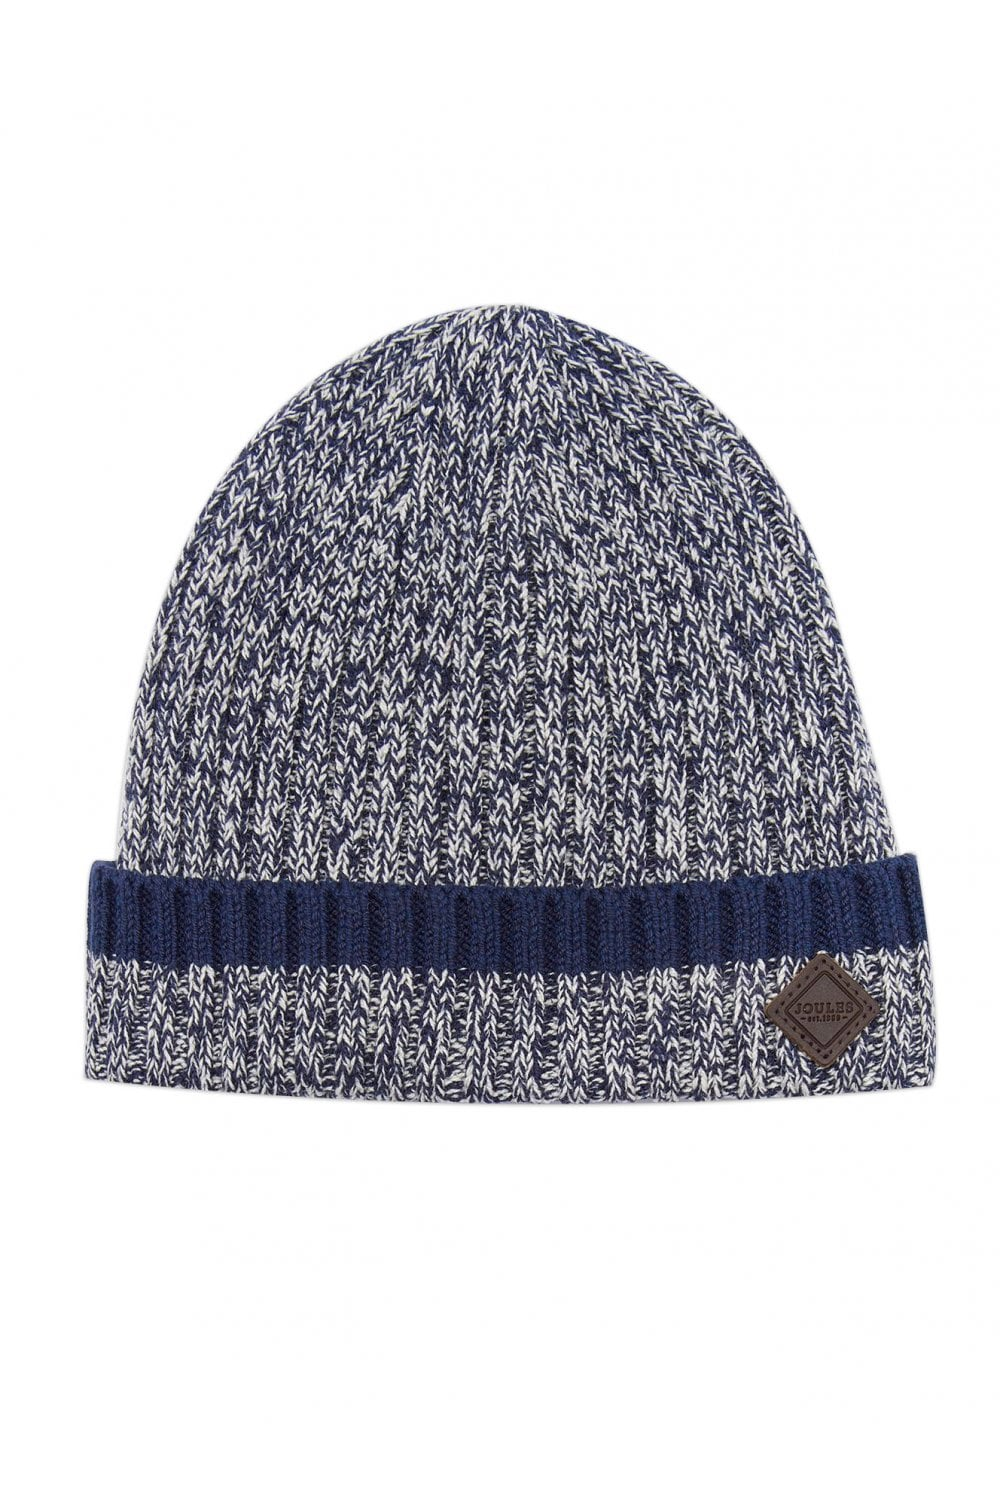 Joules Mens Oarswell Knitted Hat - Navy Cream - Menswear from ... 4f2369feed7